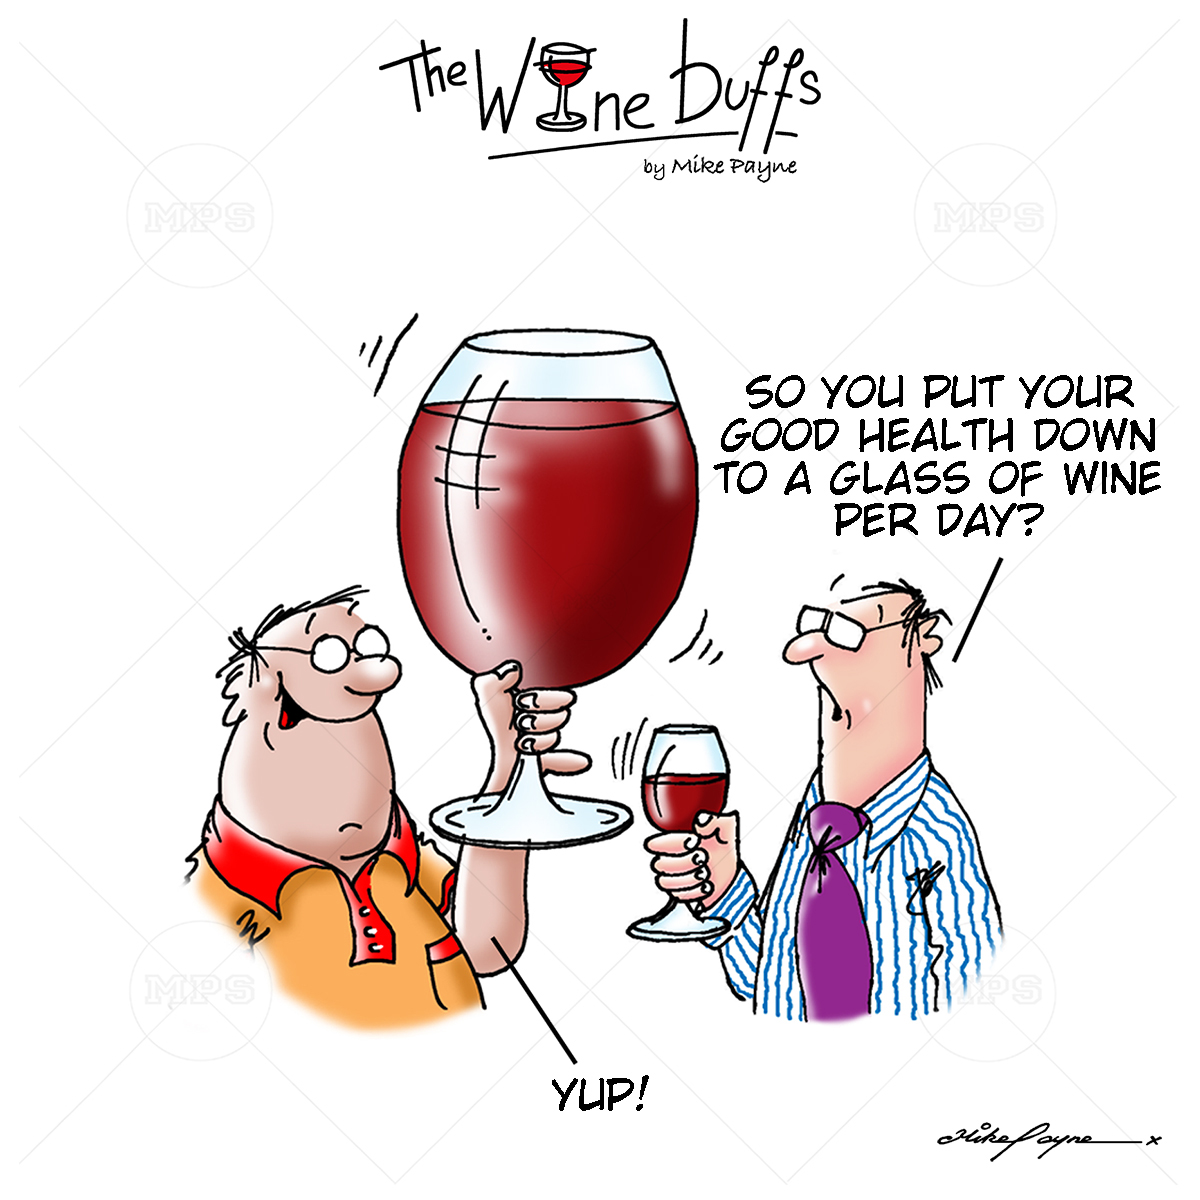 Wine Buffs Cartoon 018